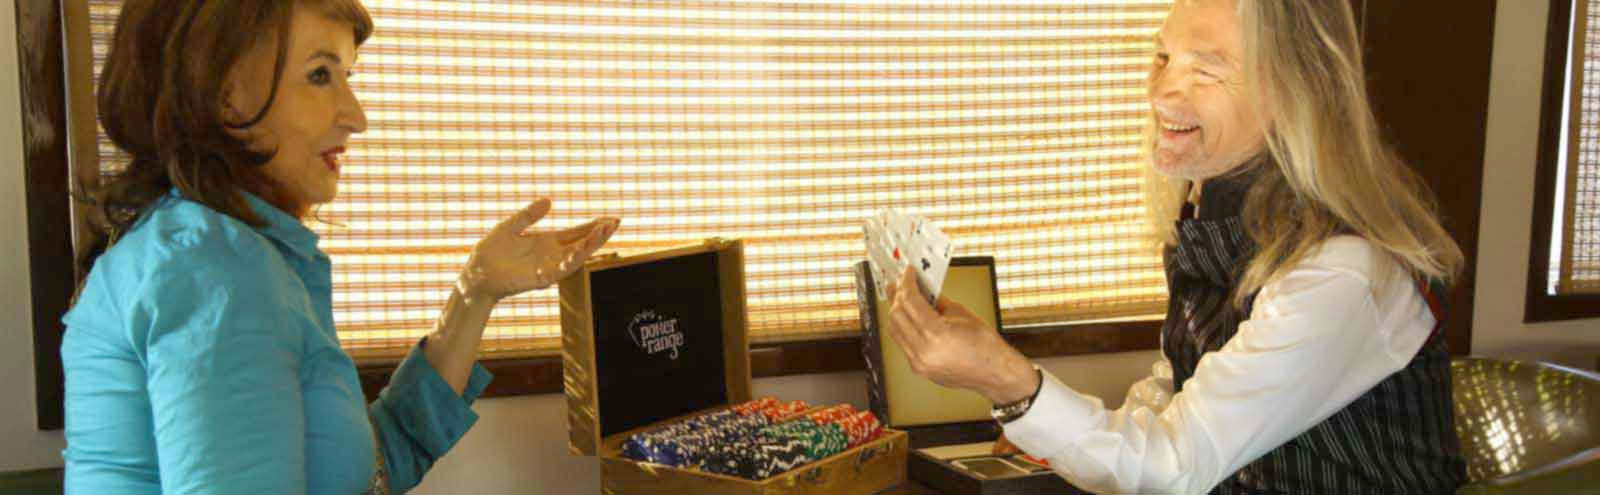 the maharaja express  guests playing games at safari lounge bar